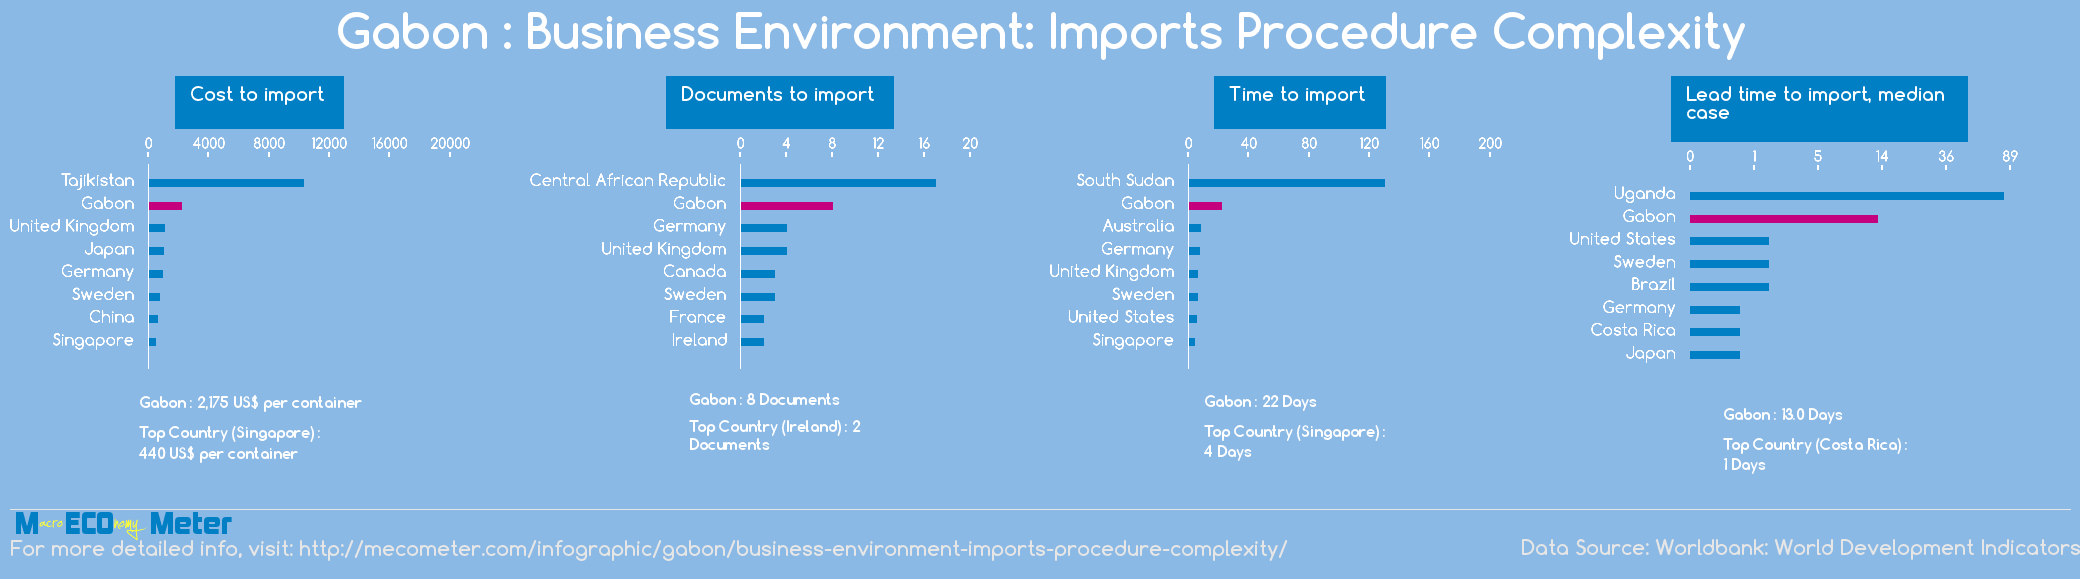 Gabon : Business Environment: Imports Procedure Complexity